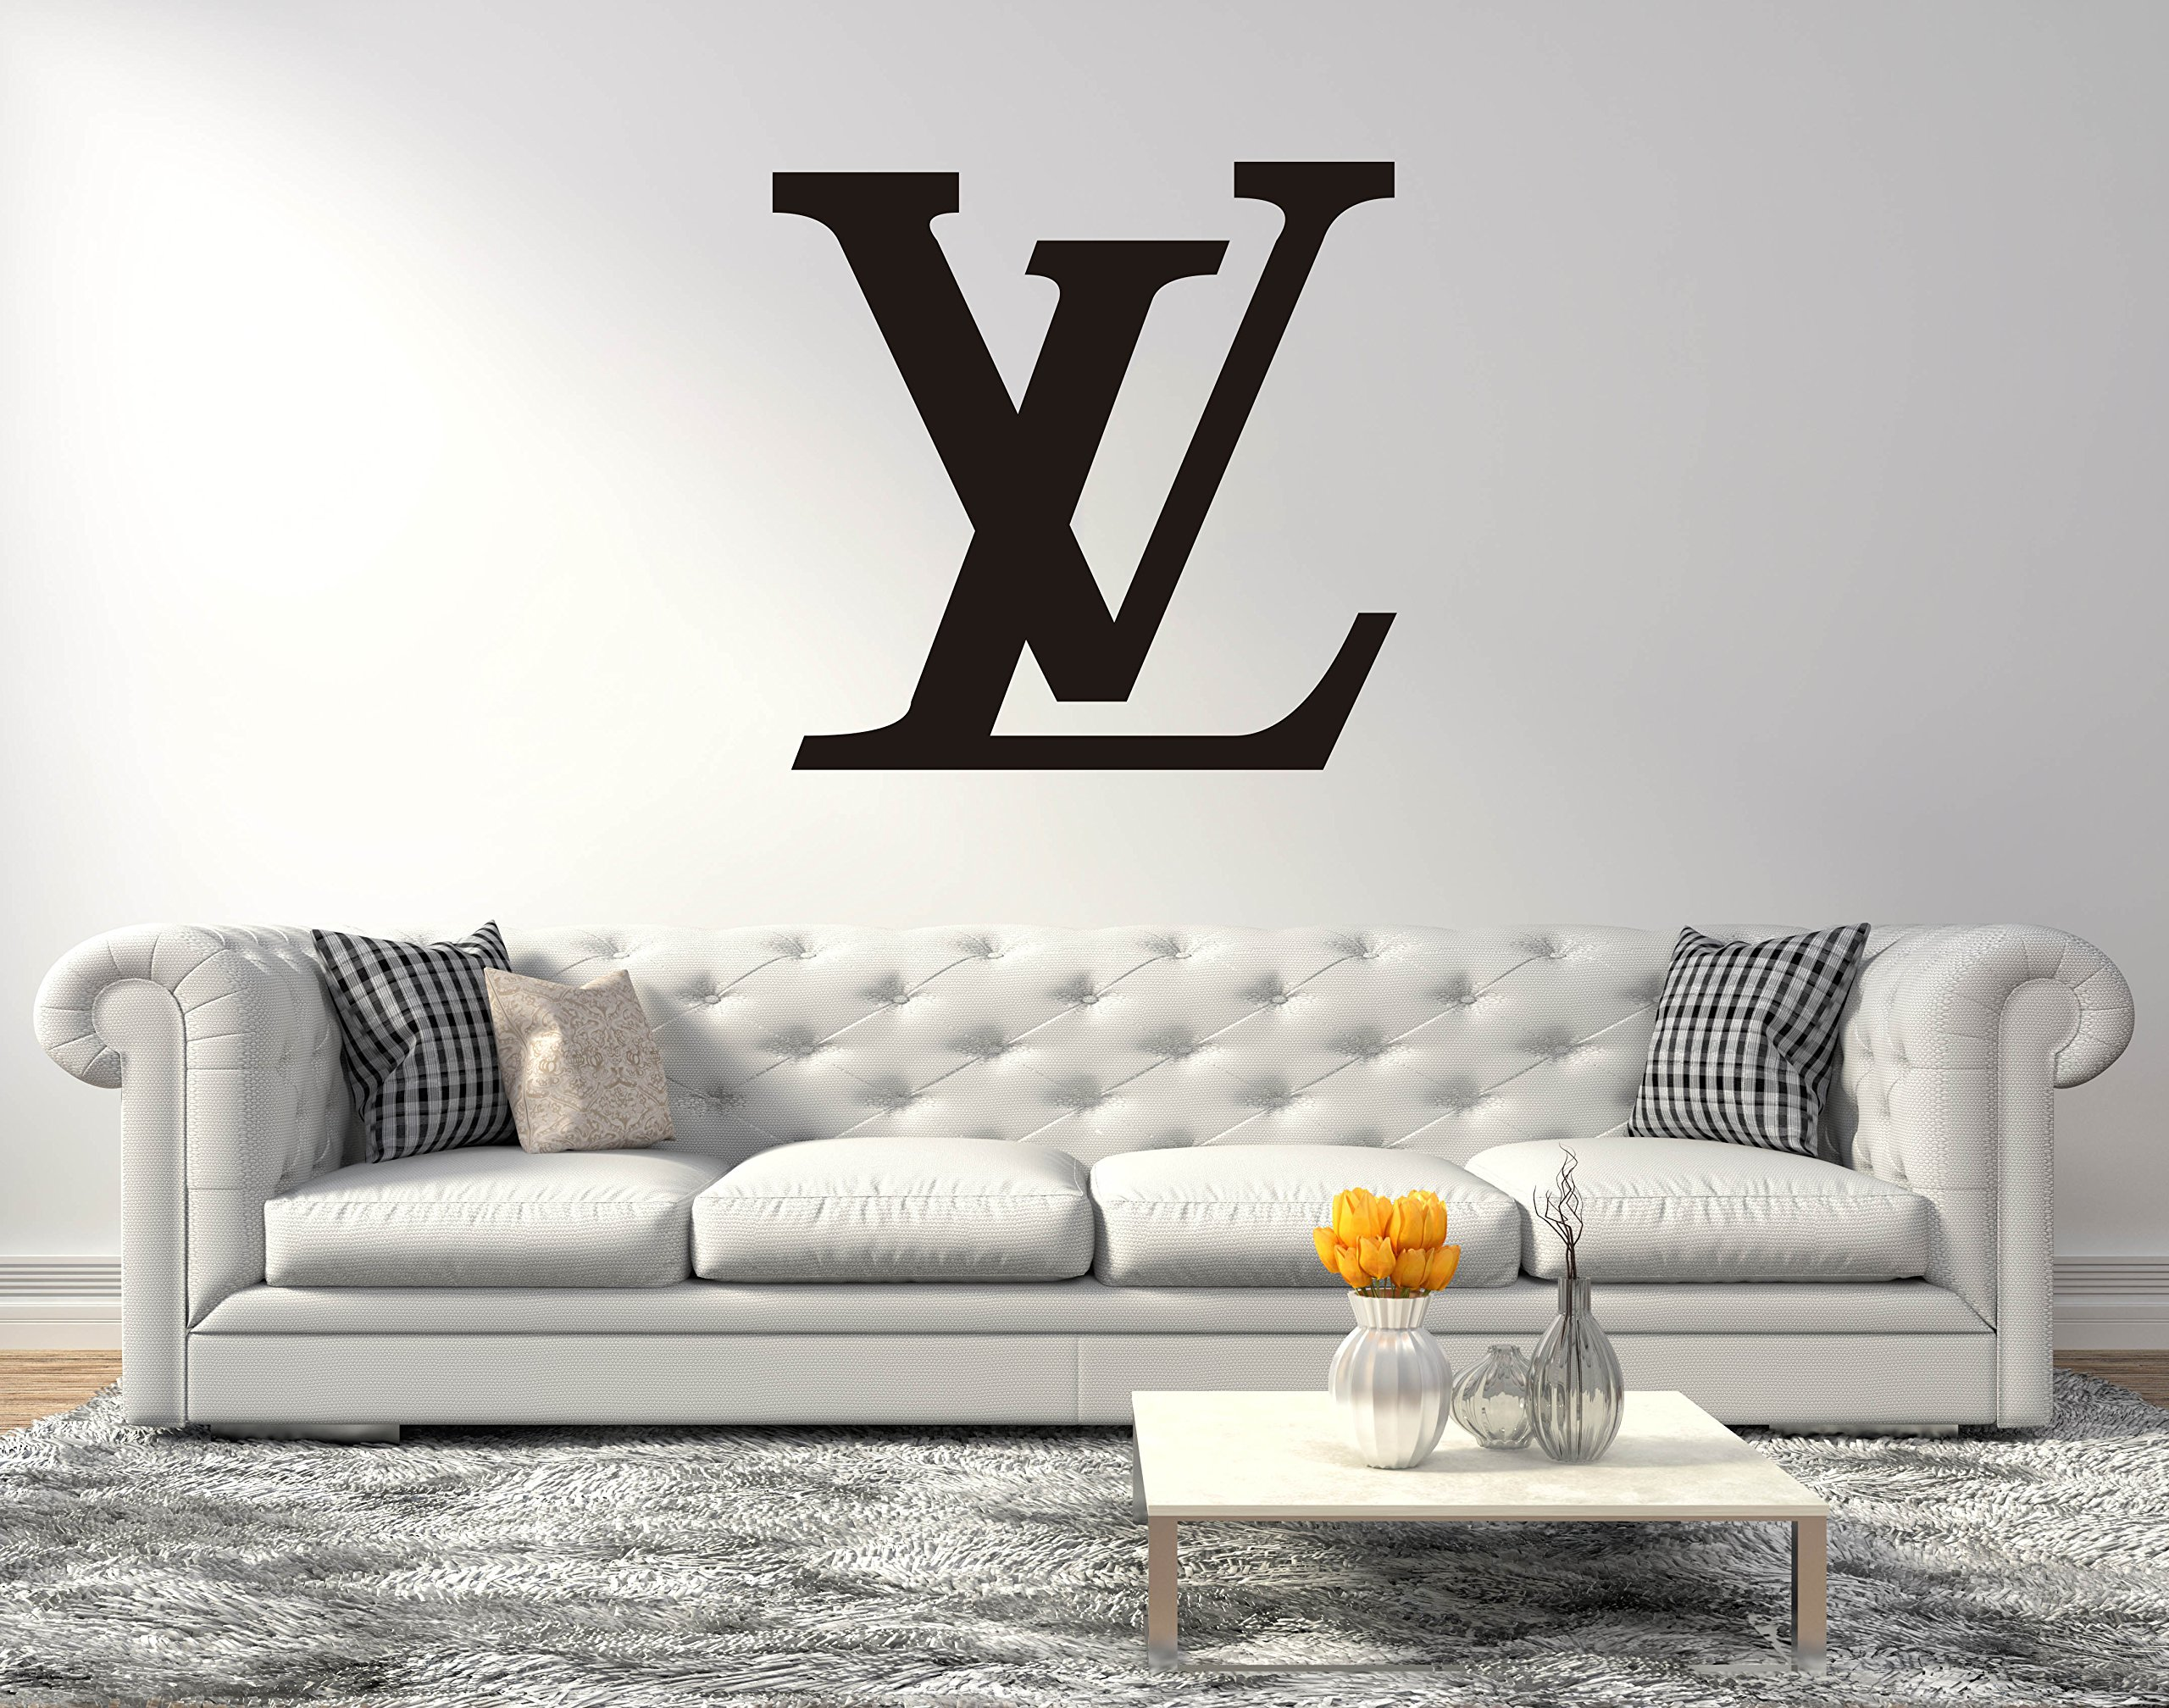 Fashion Design Logo LV - Wall Decal for Home Living Room or Bedroom Decoration (Wide 20''x20'' Height Inches)